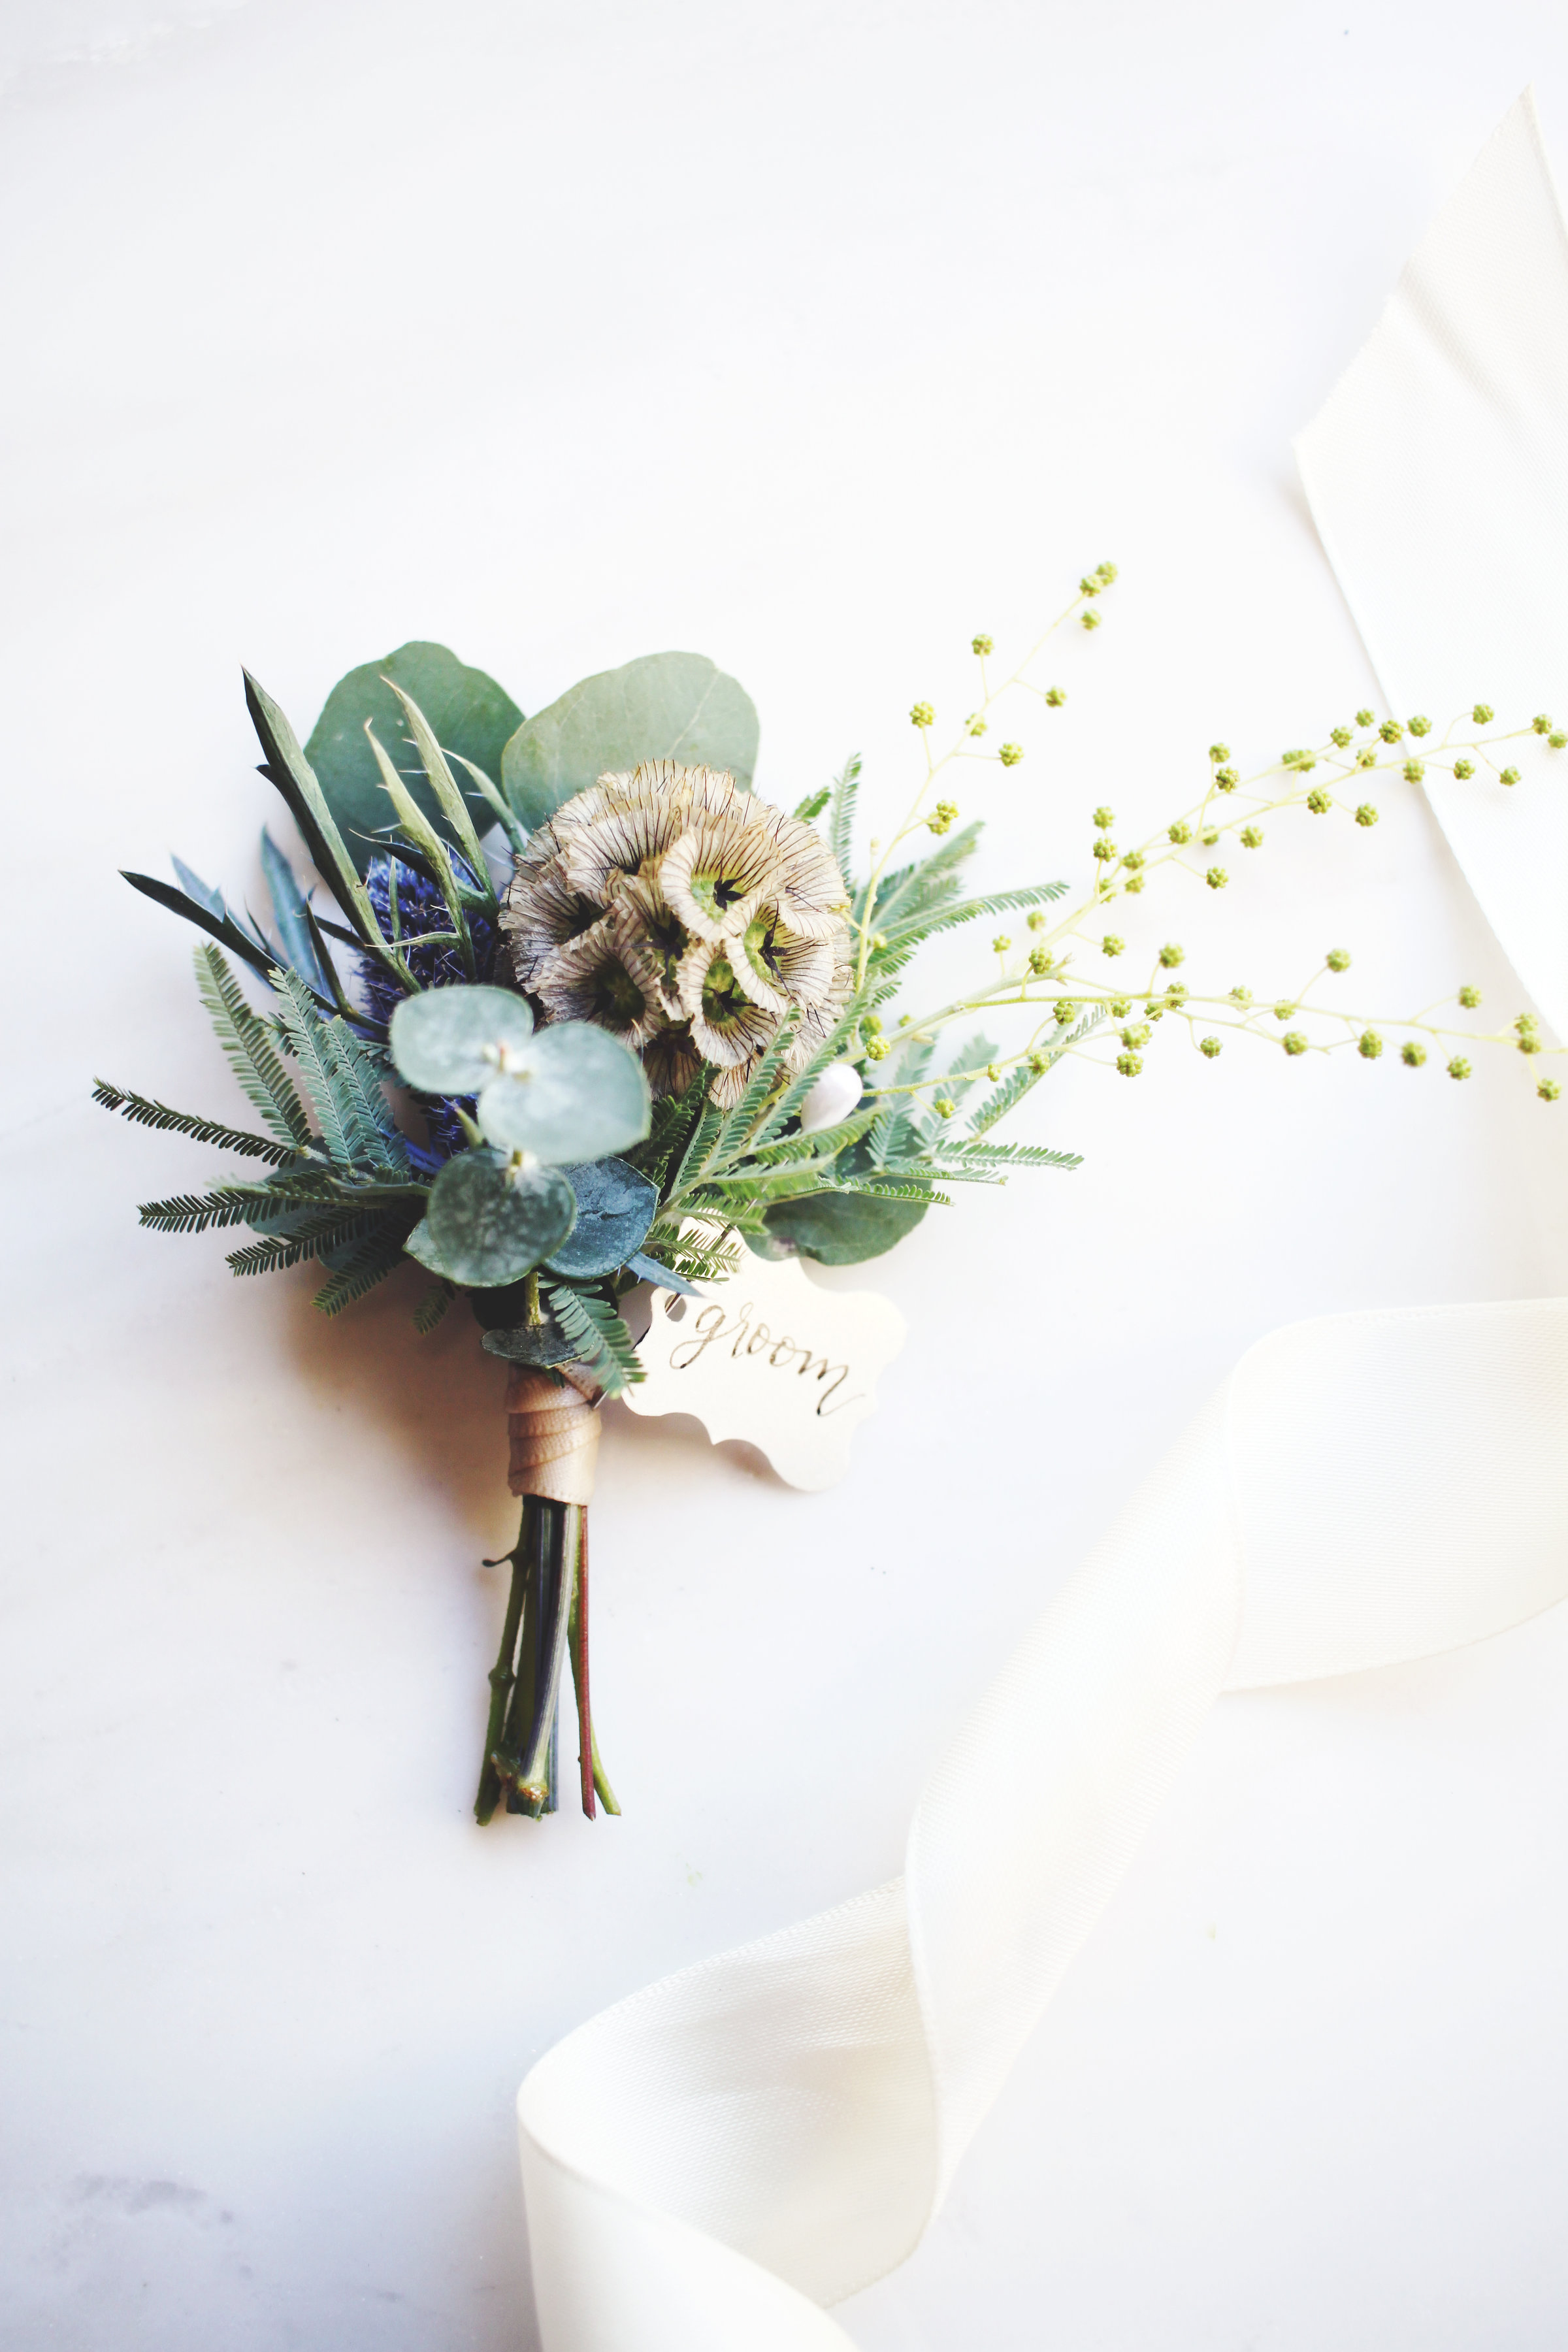 Next Steps. - After we meet, you will receive a detailed proposal based on your color palette and flower preferences, with consideration for seasonality and budget.I strive to ensure that communication and coordination is simple and personal while providing artfully designed florals for your special occasion.Listed below are some Fleurish offerings.